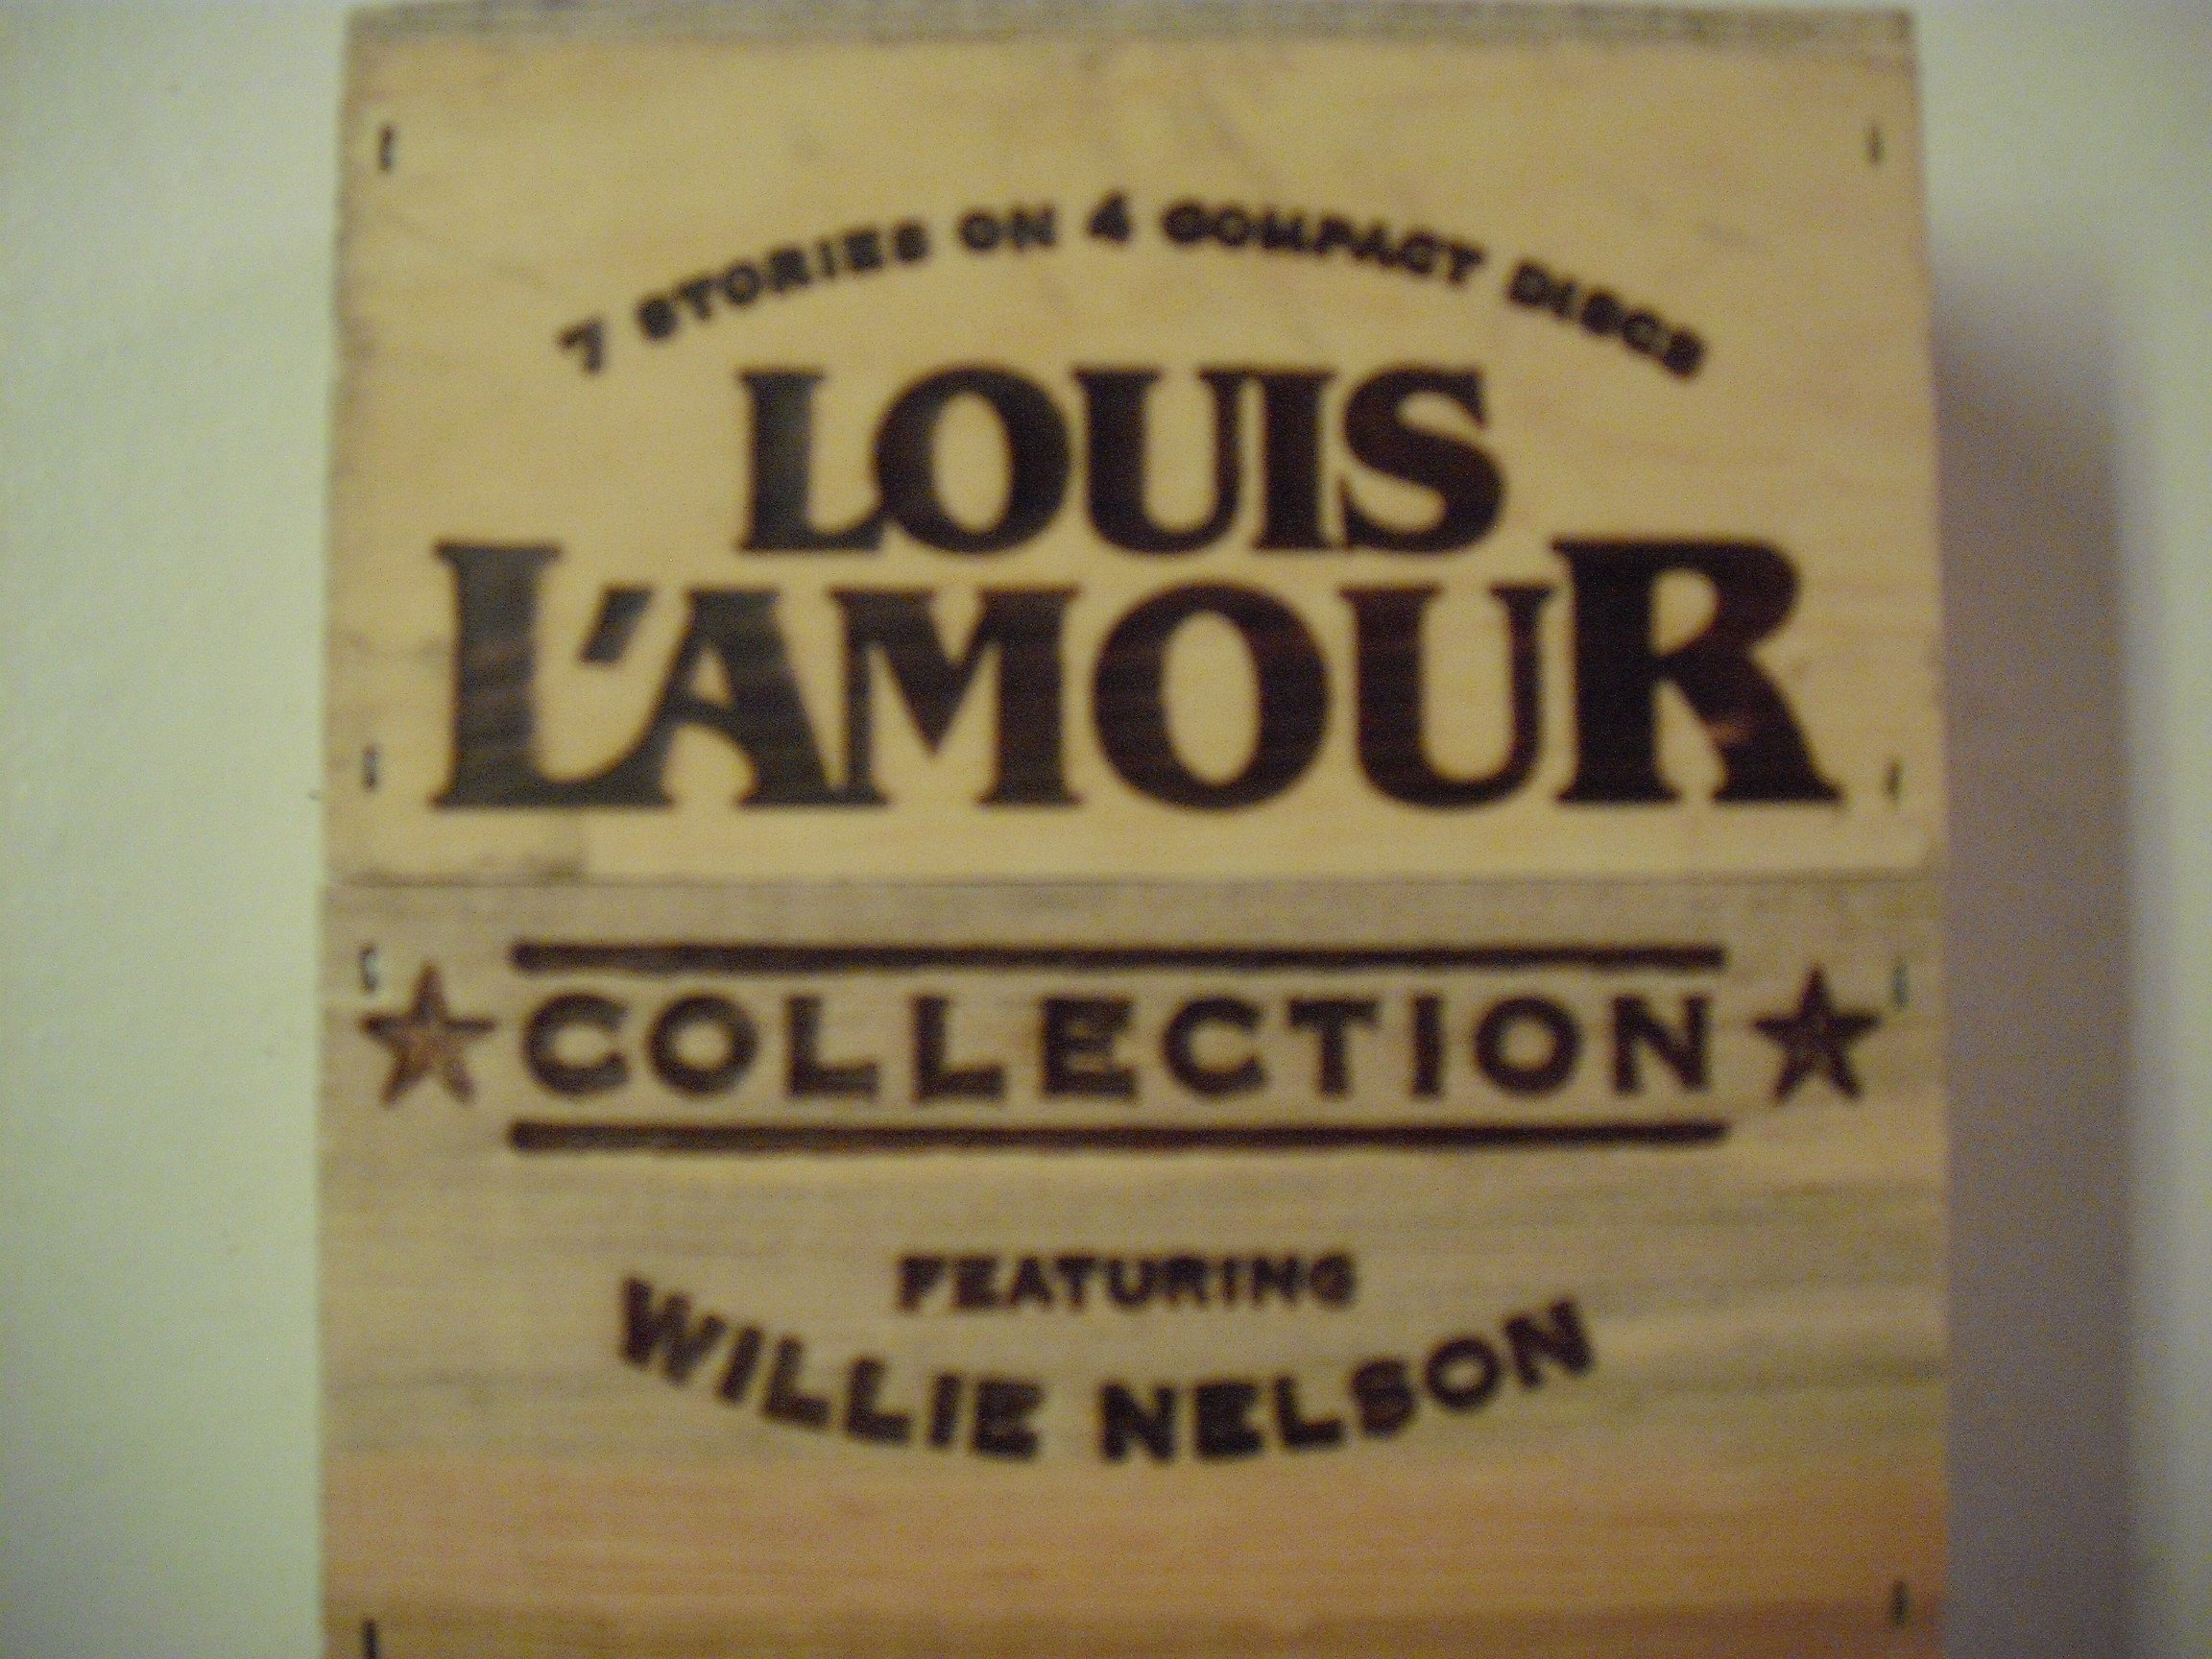 The Louis L'Amour Collection - Featuring Willie Nelson - (In Collectible Wooden Box) by HighBridge